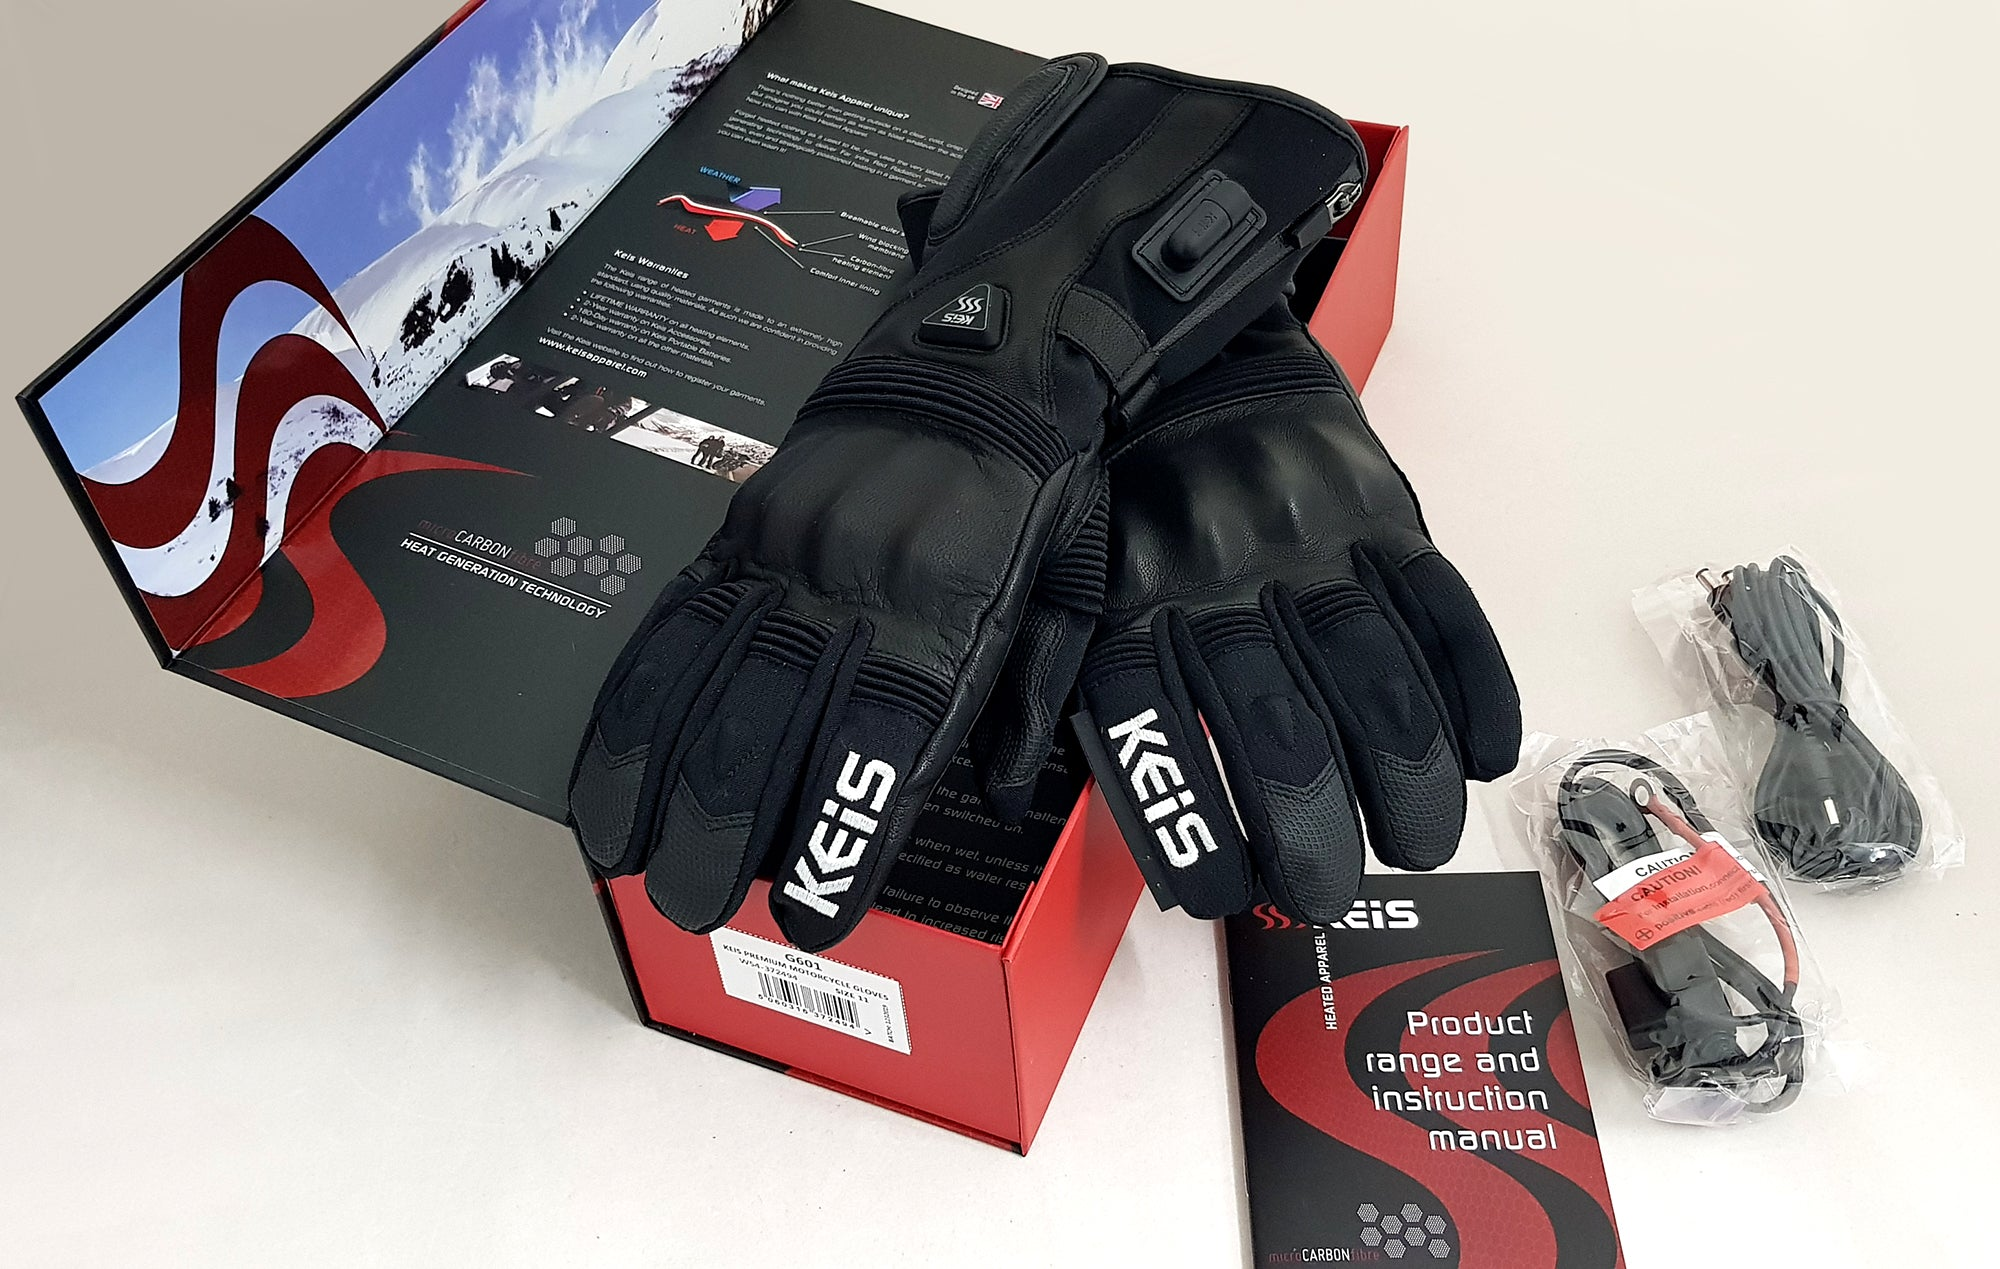 Box content for the G601 Keis Heated Motorcycle Gloves